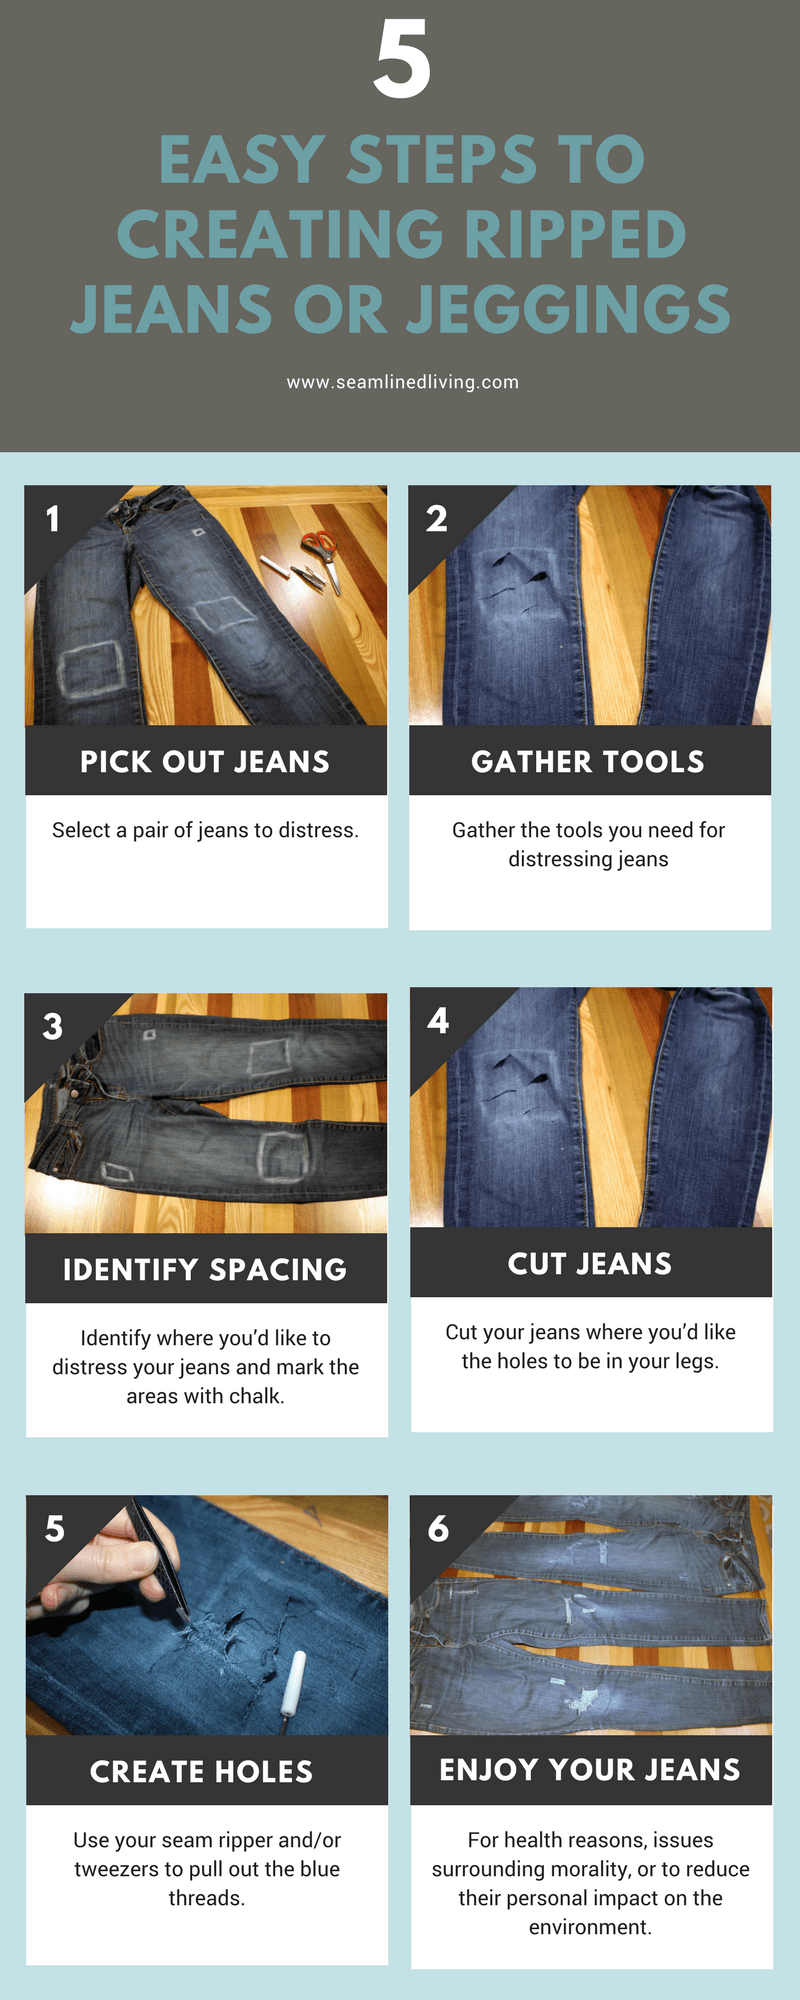 DIY ripped jeans tutorial infographic | DIY Ripped Jeans | Seamlined Living